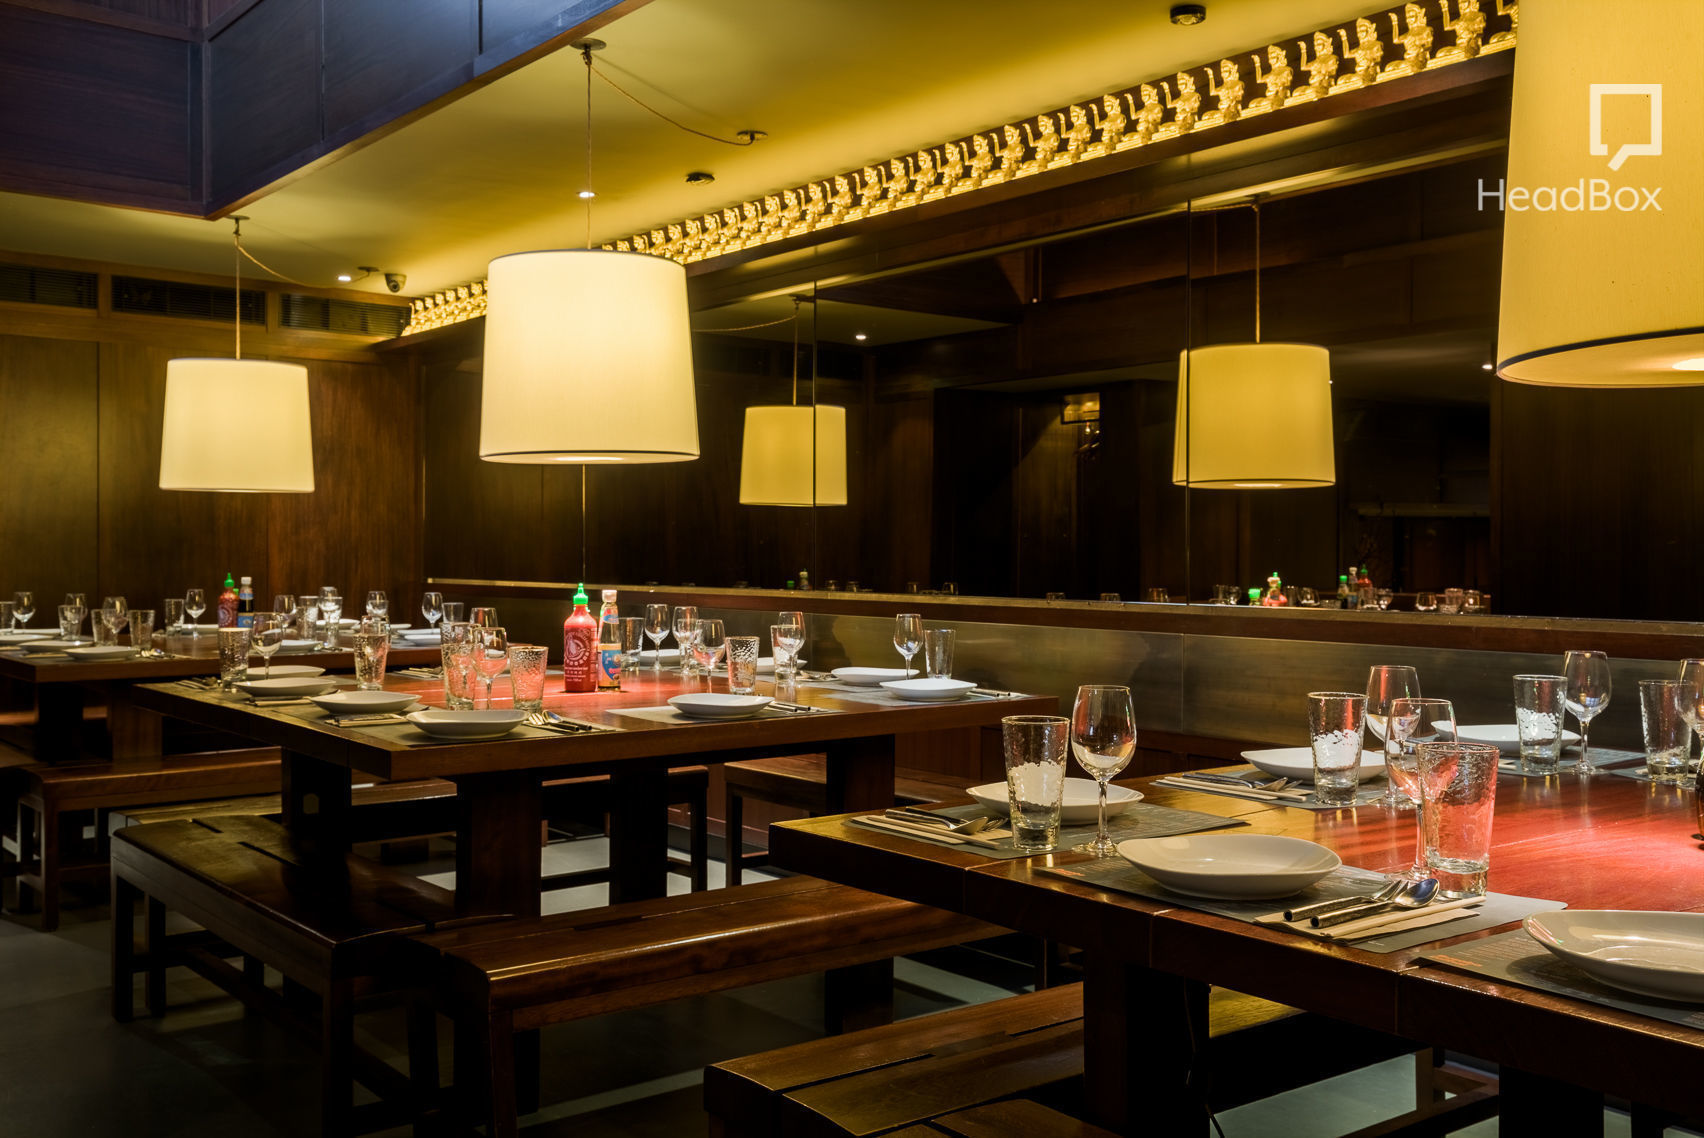 Private Dining Room, Busaba Eathai Covent Garden